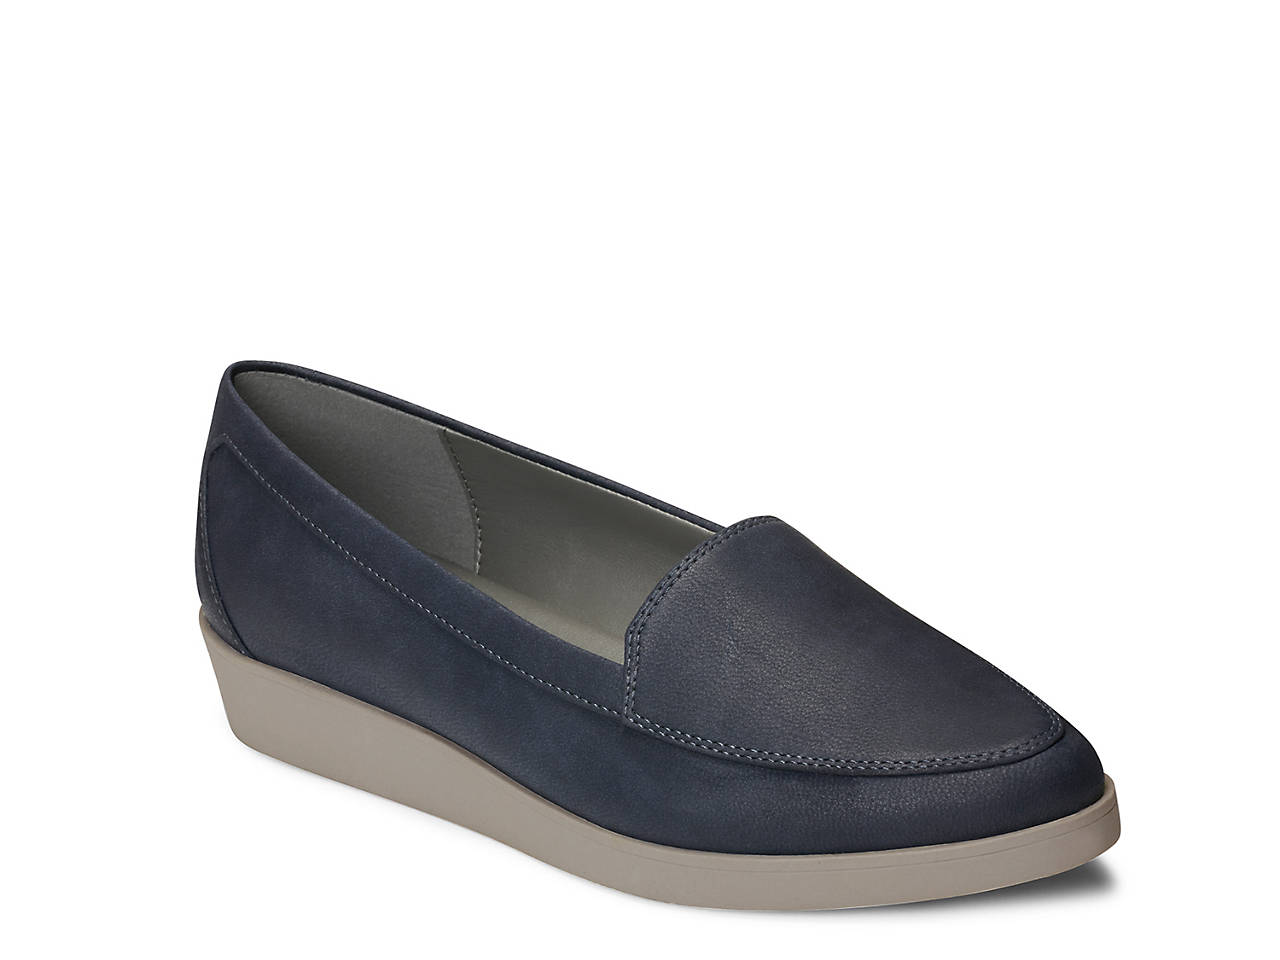 d7ab2a3573f55 A2 by Aerosoles Clever Wedge Slip-On Women s Shoes